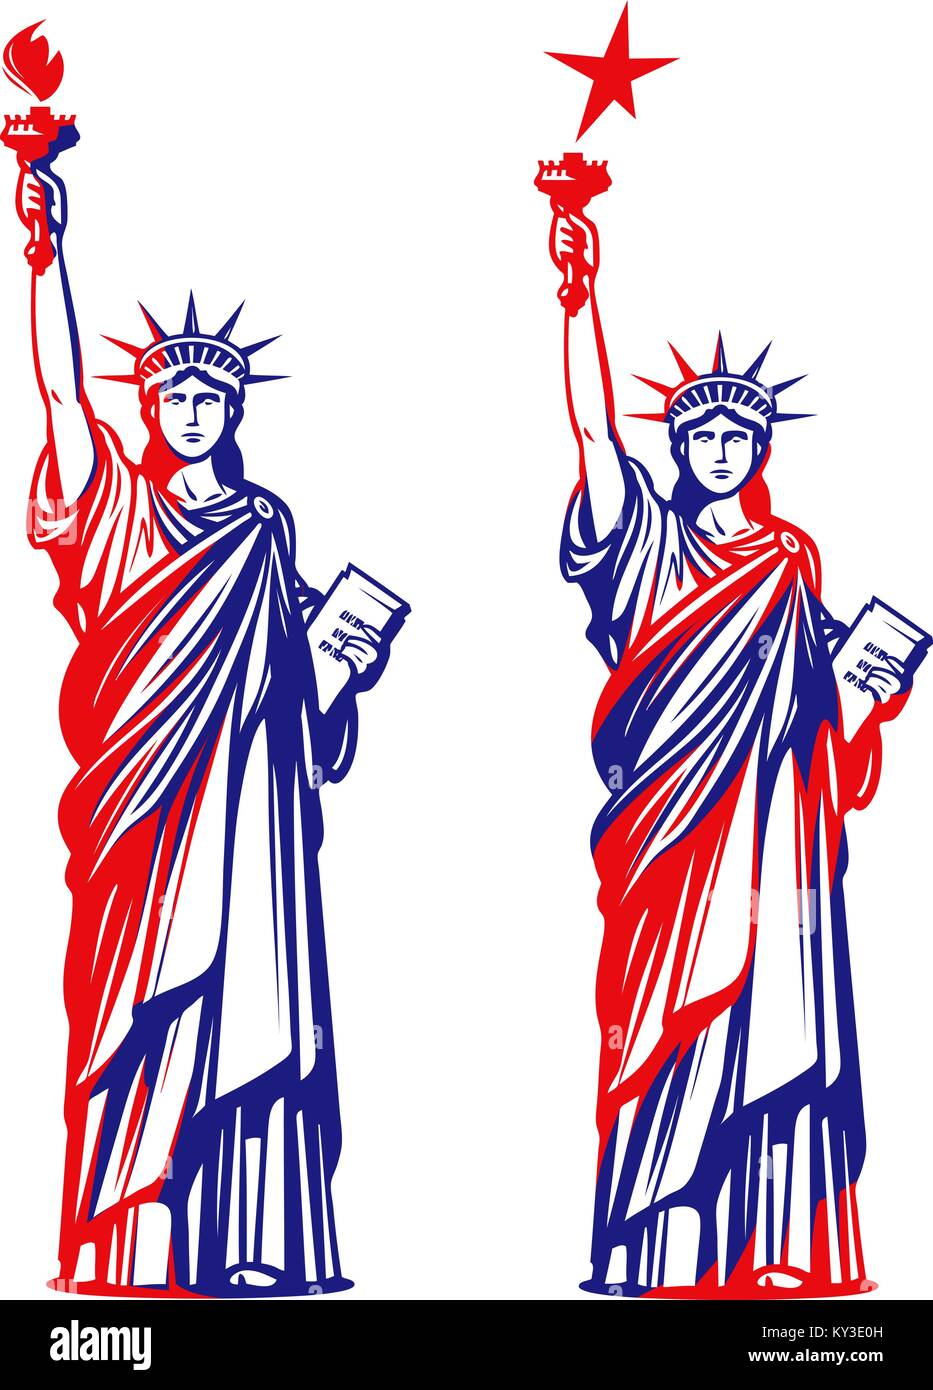 Statue of liberty, freedom. USA symbol or icon. Vector illustration Stock Vector